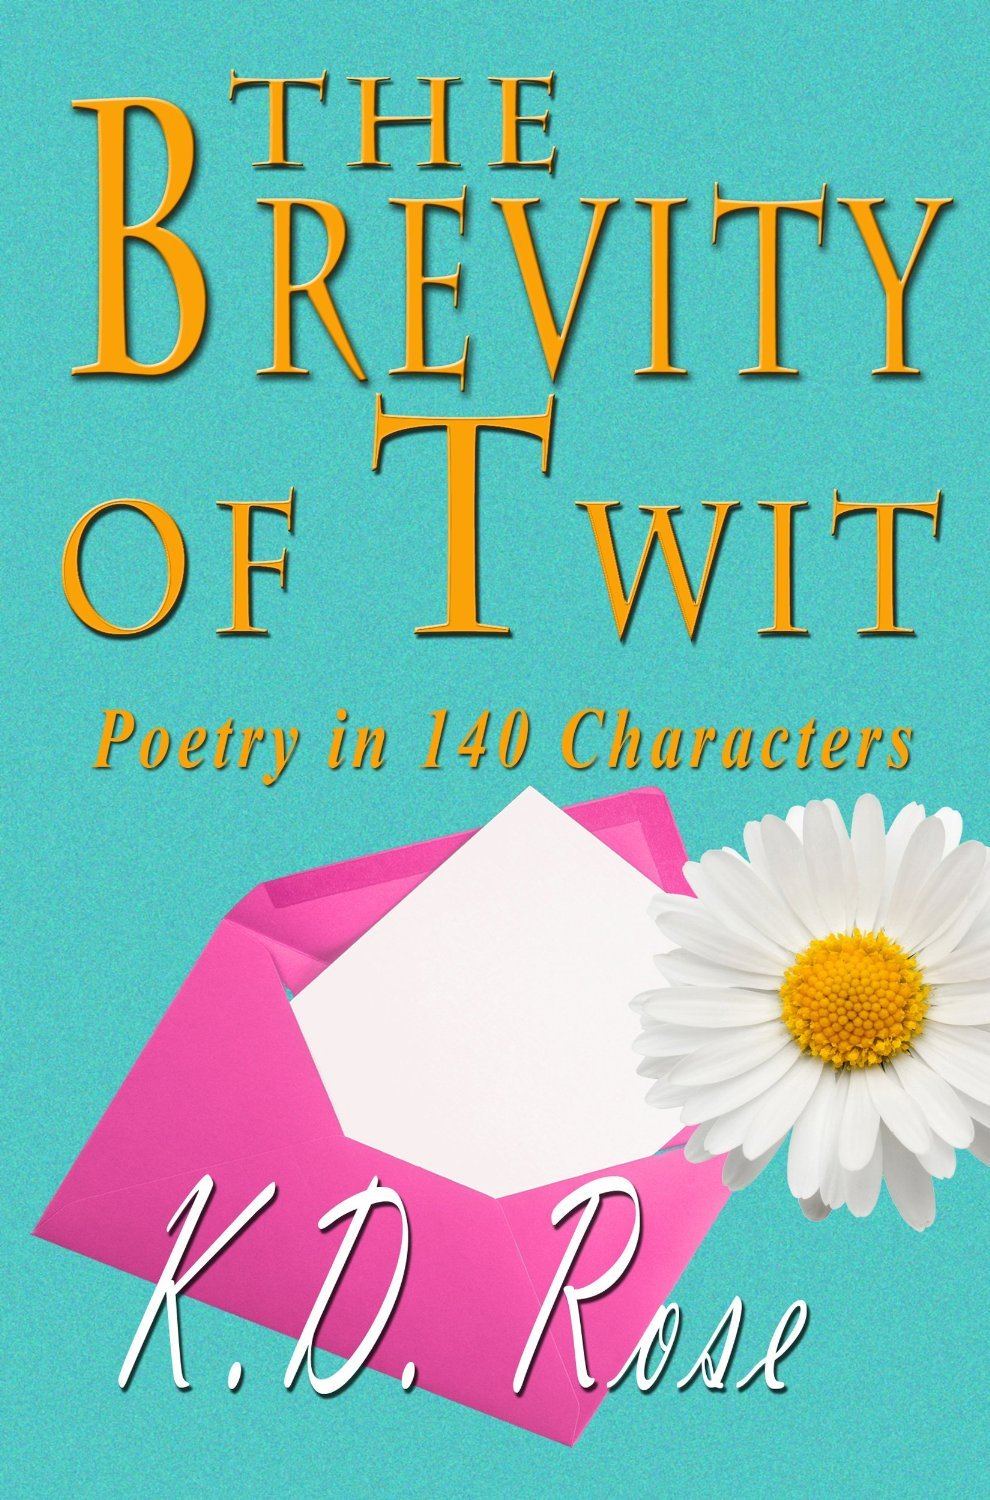 The Brevity of Twit